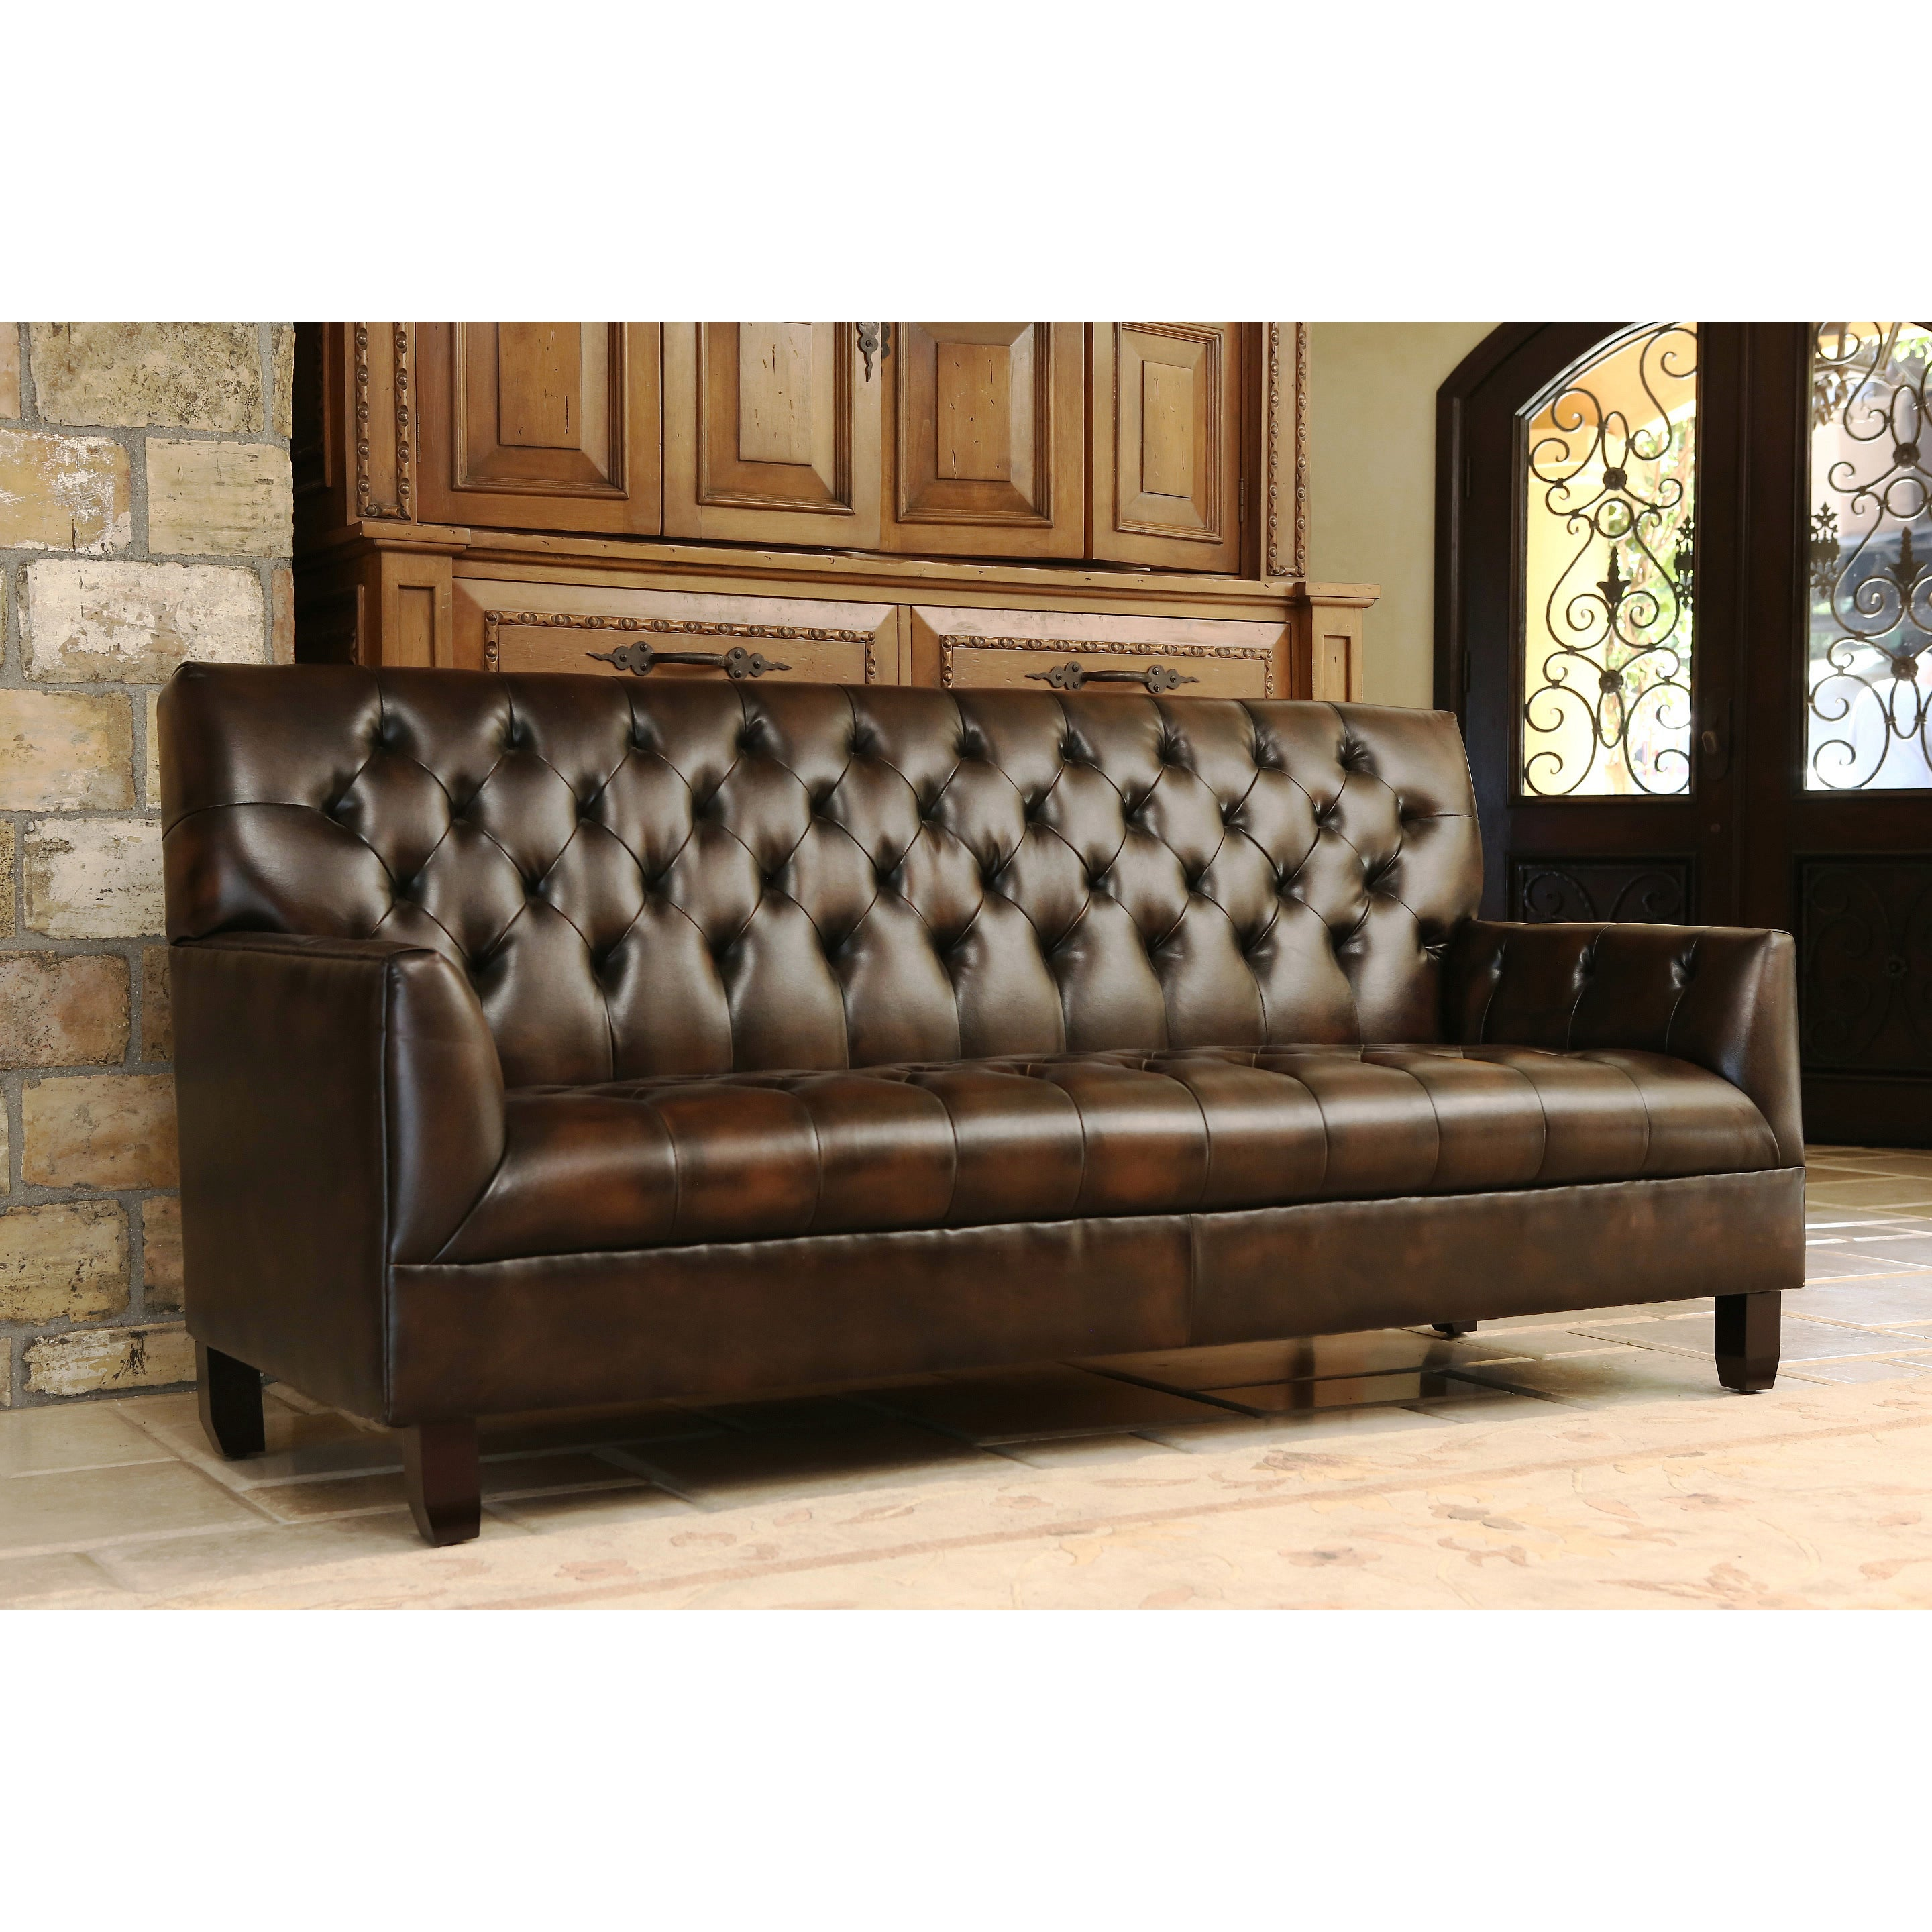 Abbyson Alessio Hand Rubbed Bonded Leather Sofa   Free Shipping Today    Overstock   16612091